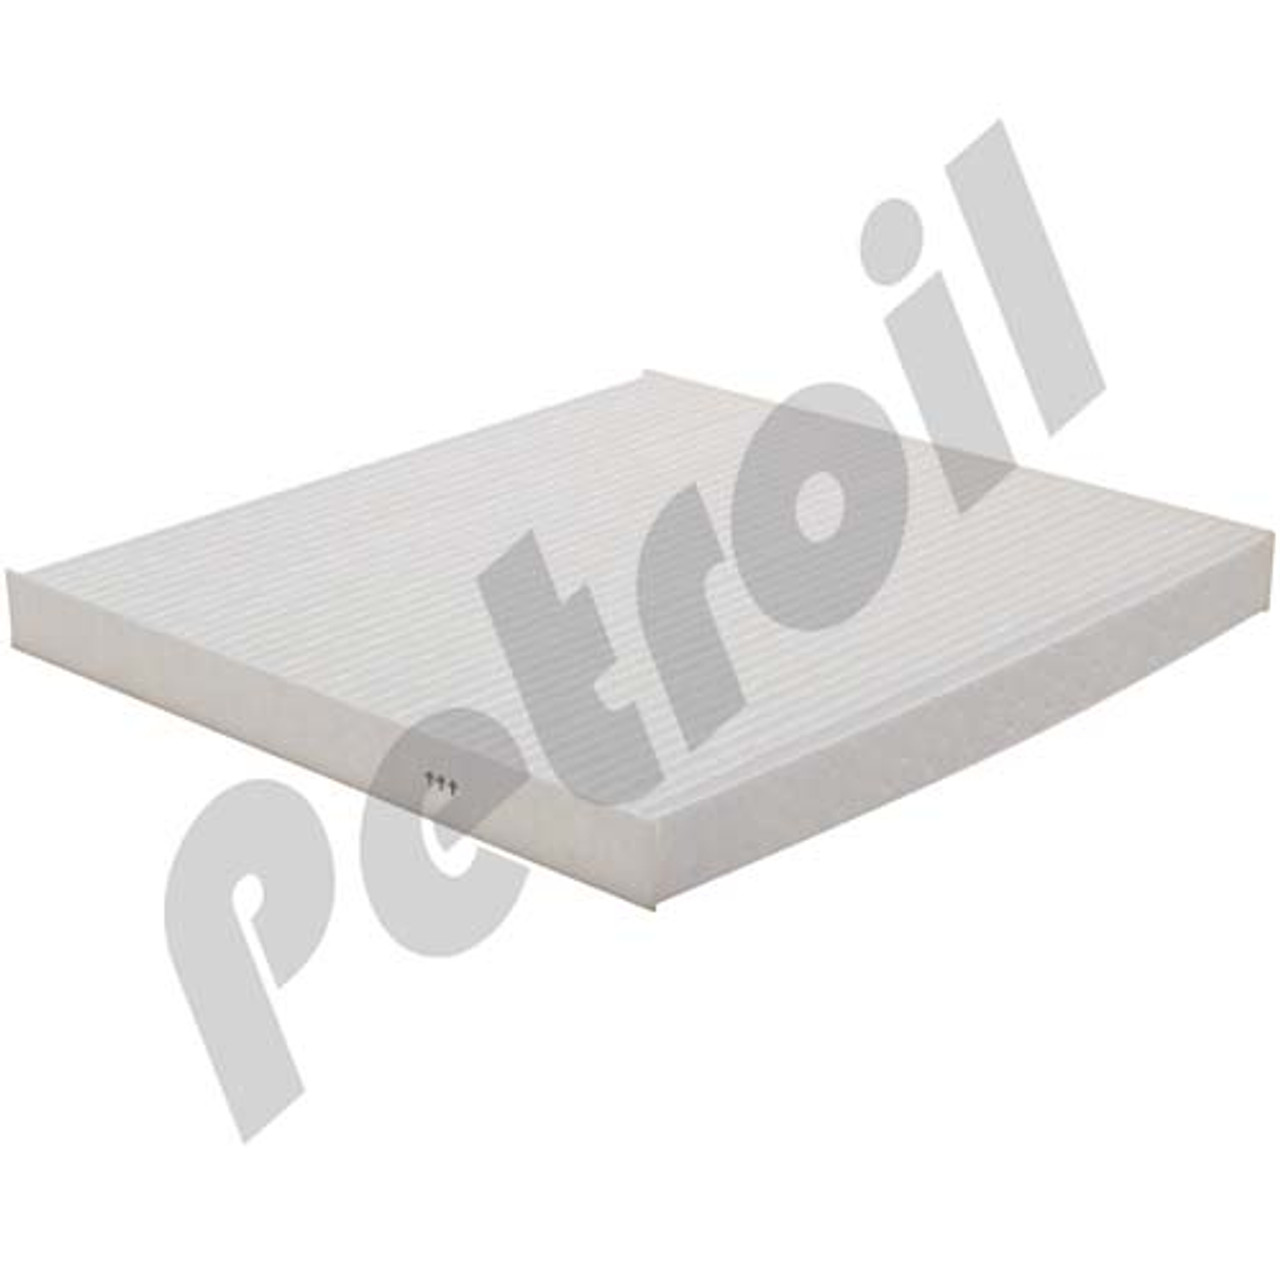 Cabin Air Filter Wix WP10277